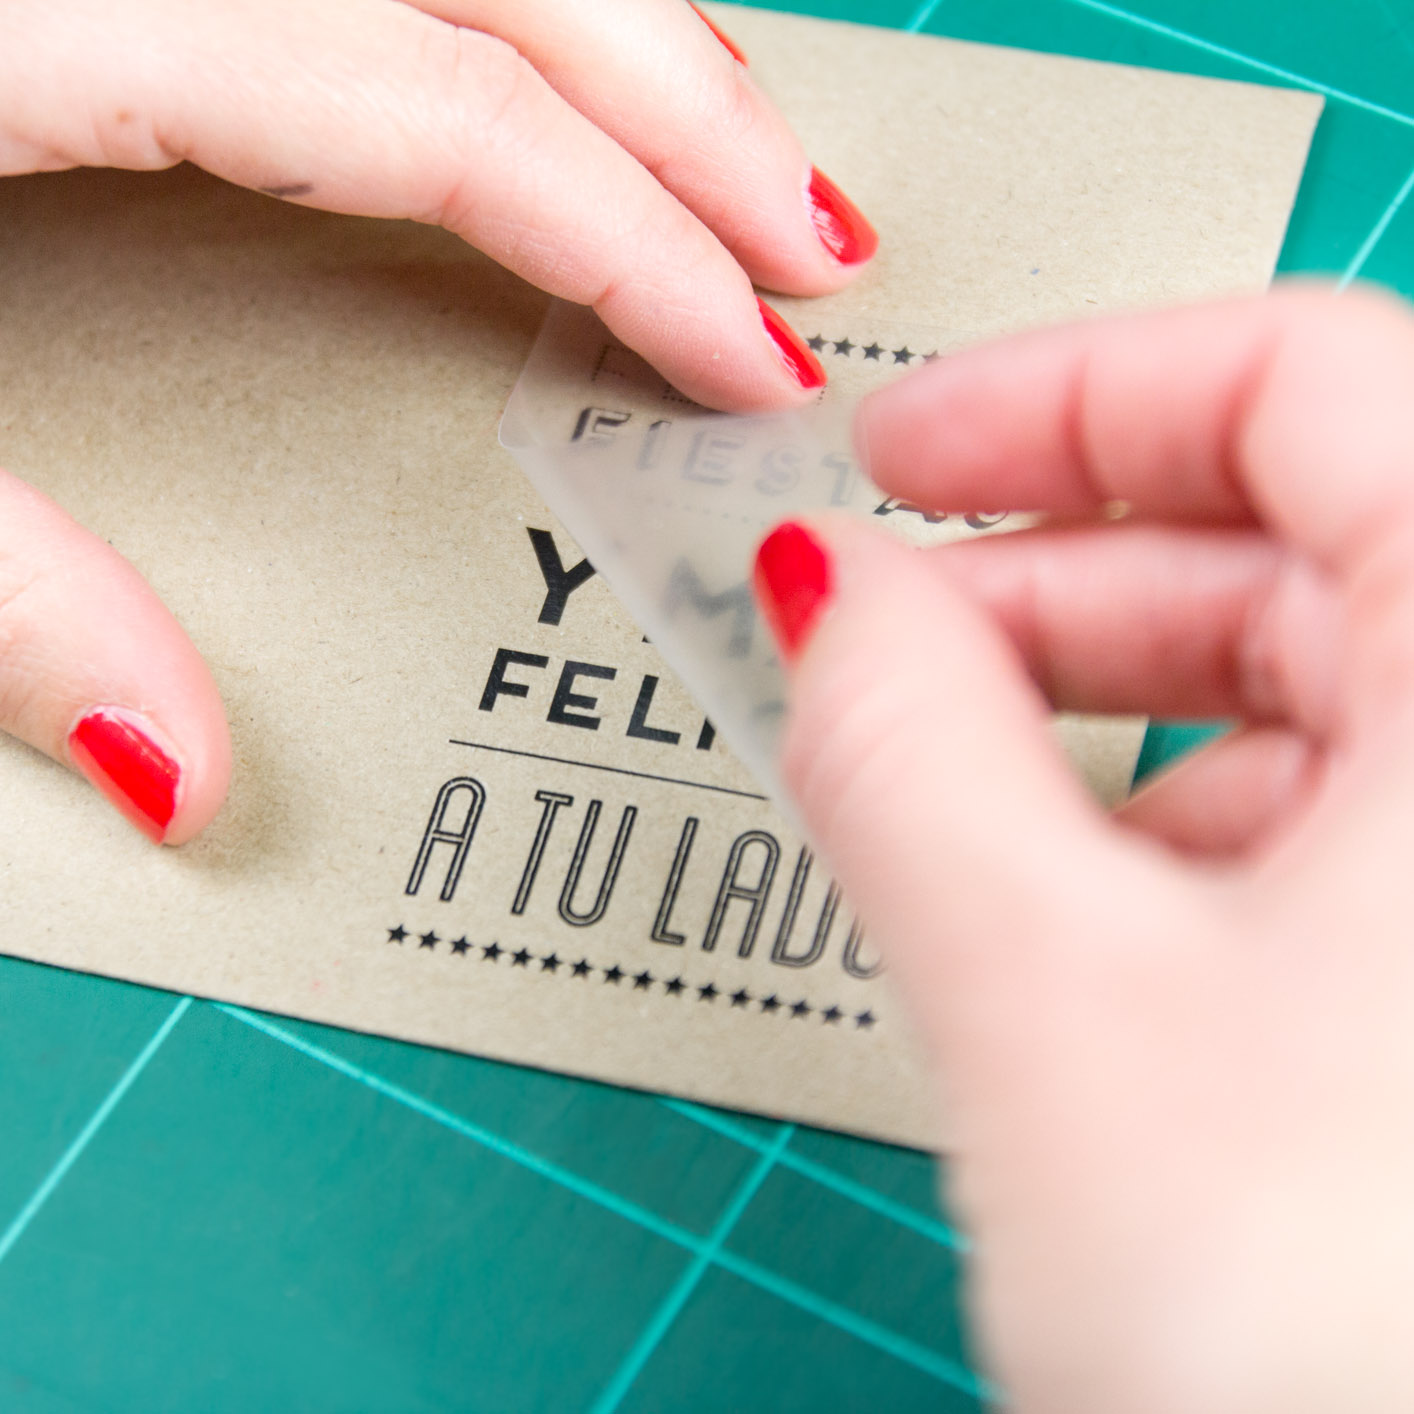 mr_wonderful_tutorial_descargable_freebie_postal_felicitacion_navidad_07